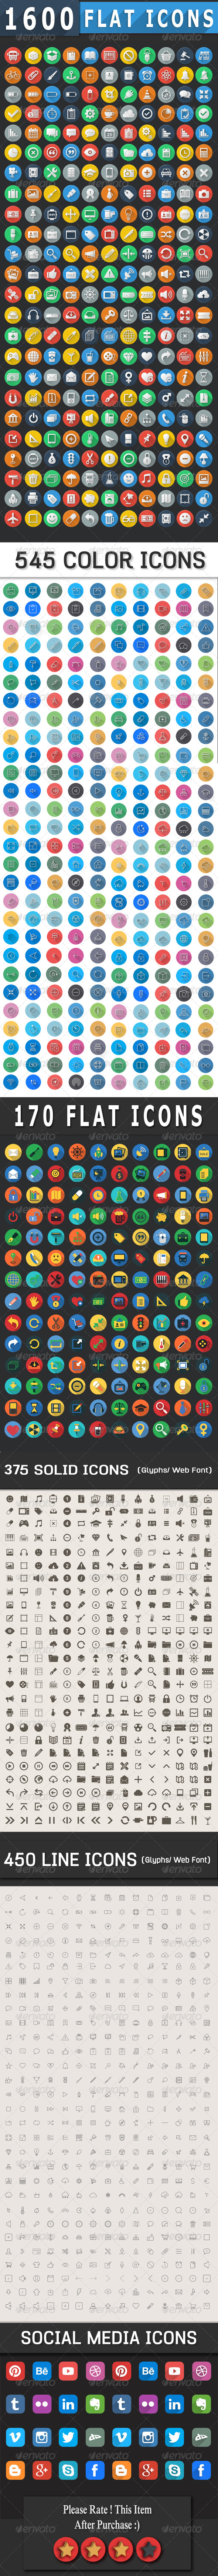 GraphicRiver 1600& Flat Icons Colorful Icons Set 7921444